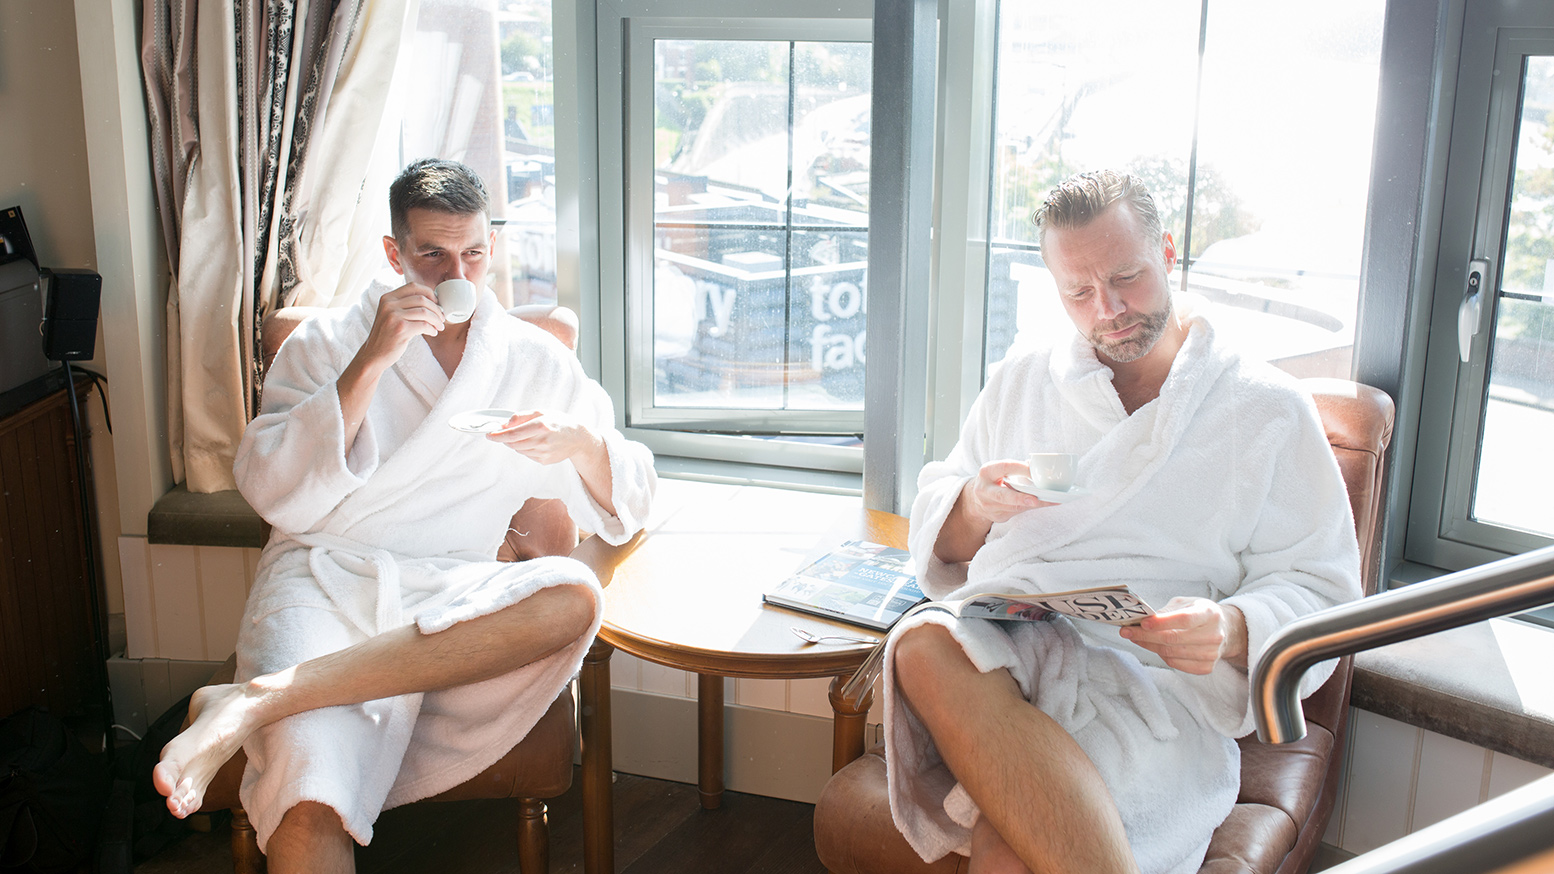 Groom and best man drinking coffee in robes